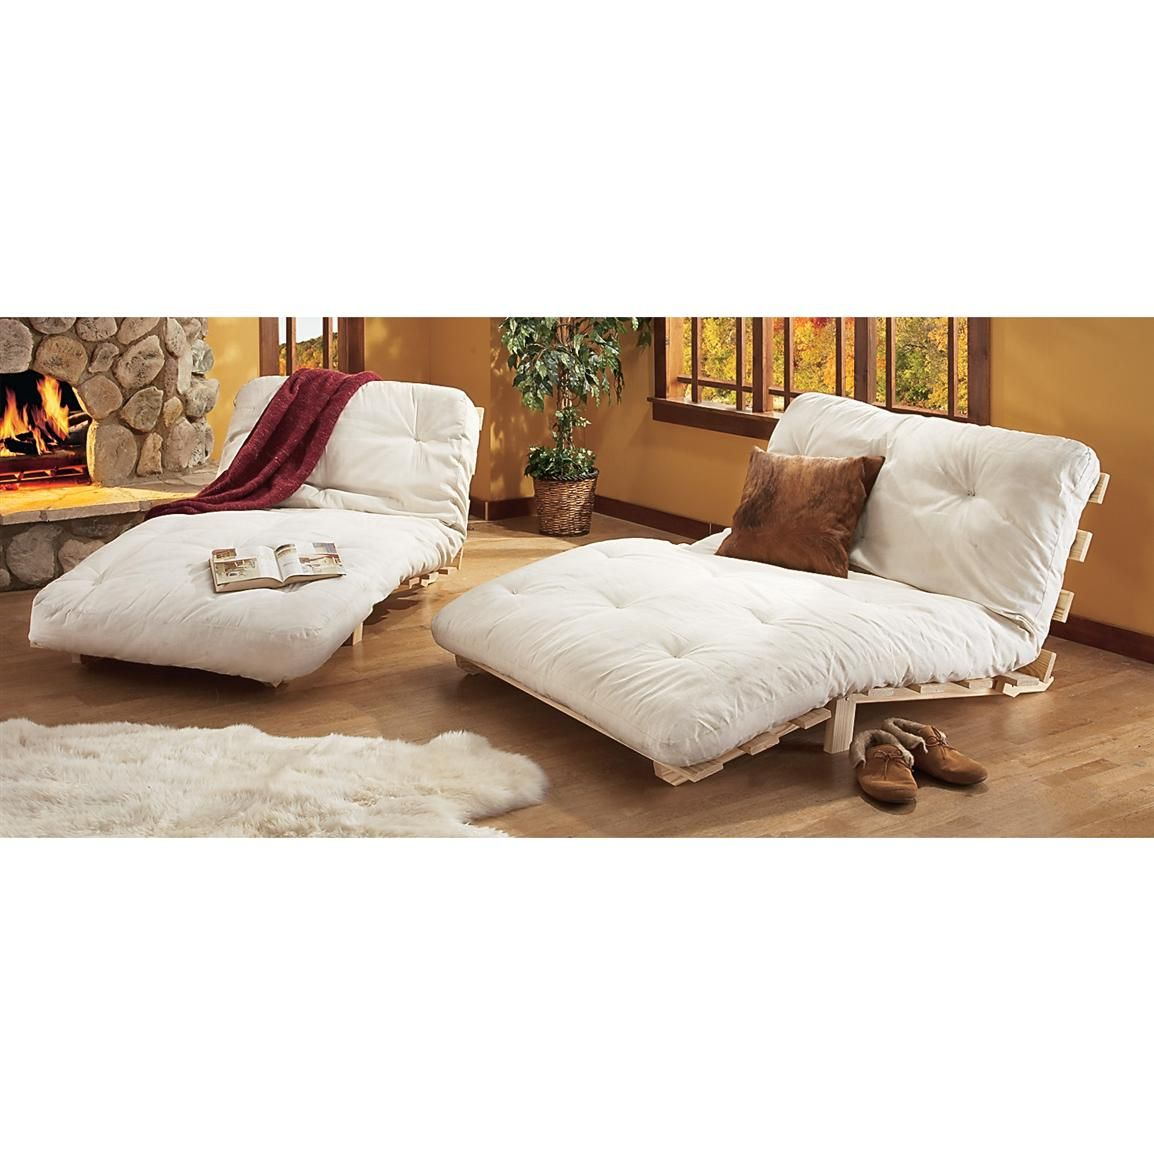 Premier Futon Twin Mattress 99005 Living Room At Sportsman S Guide